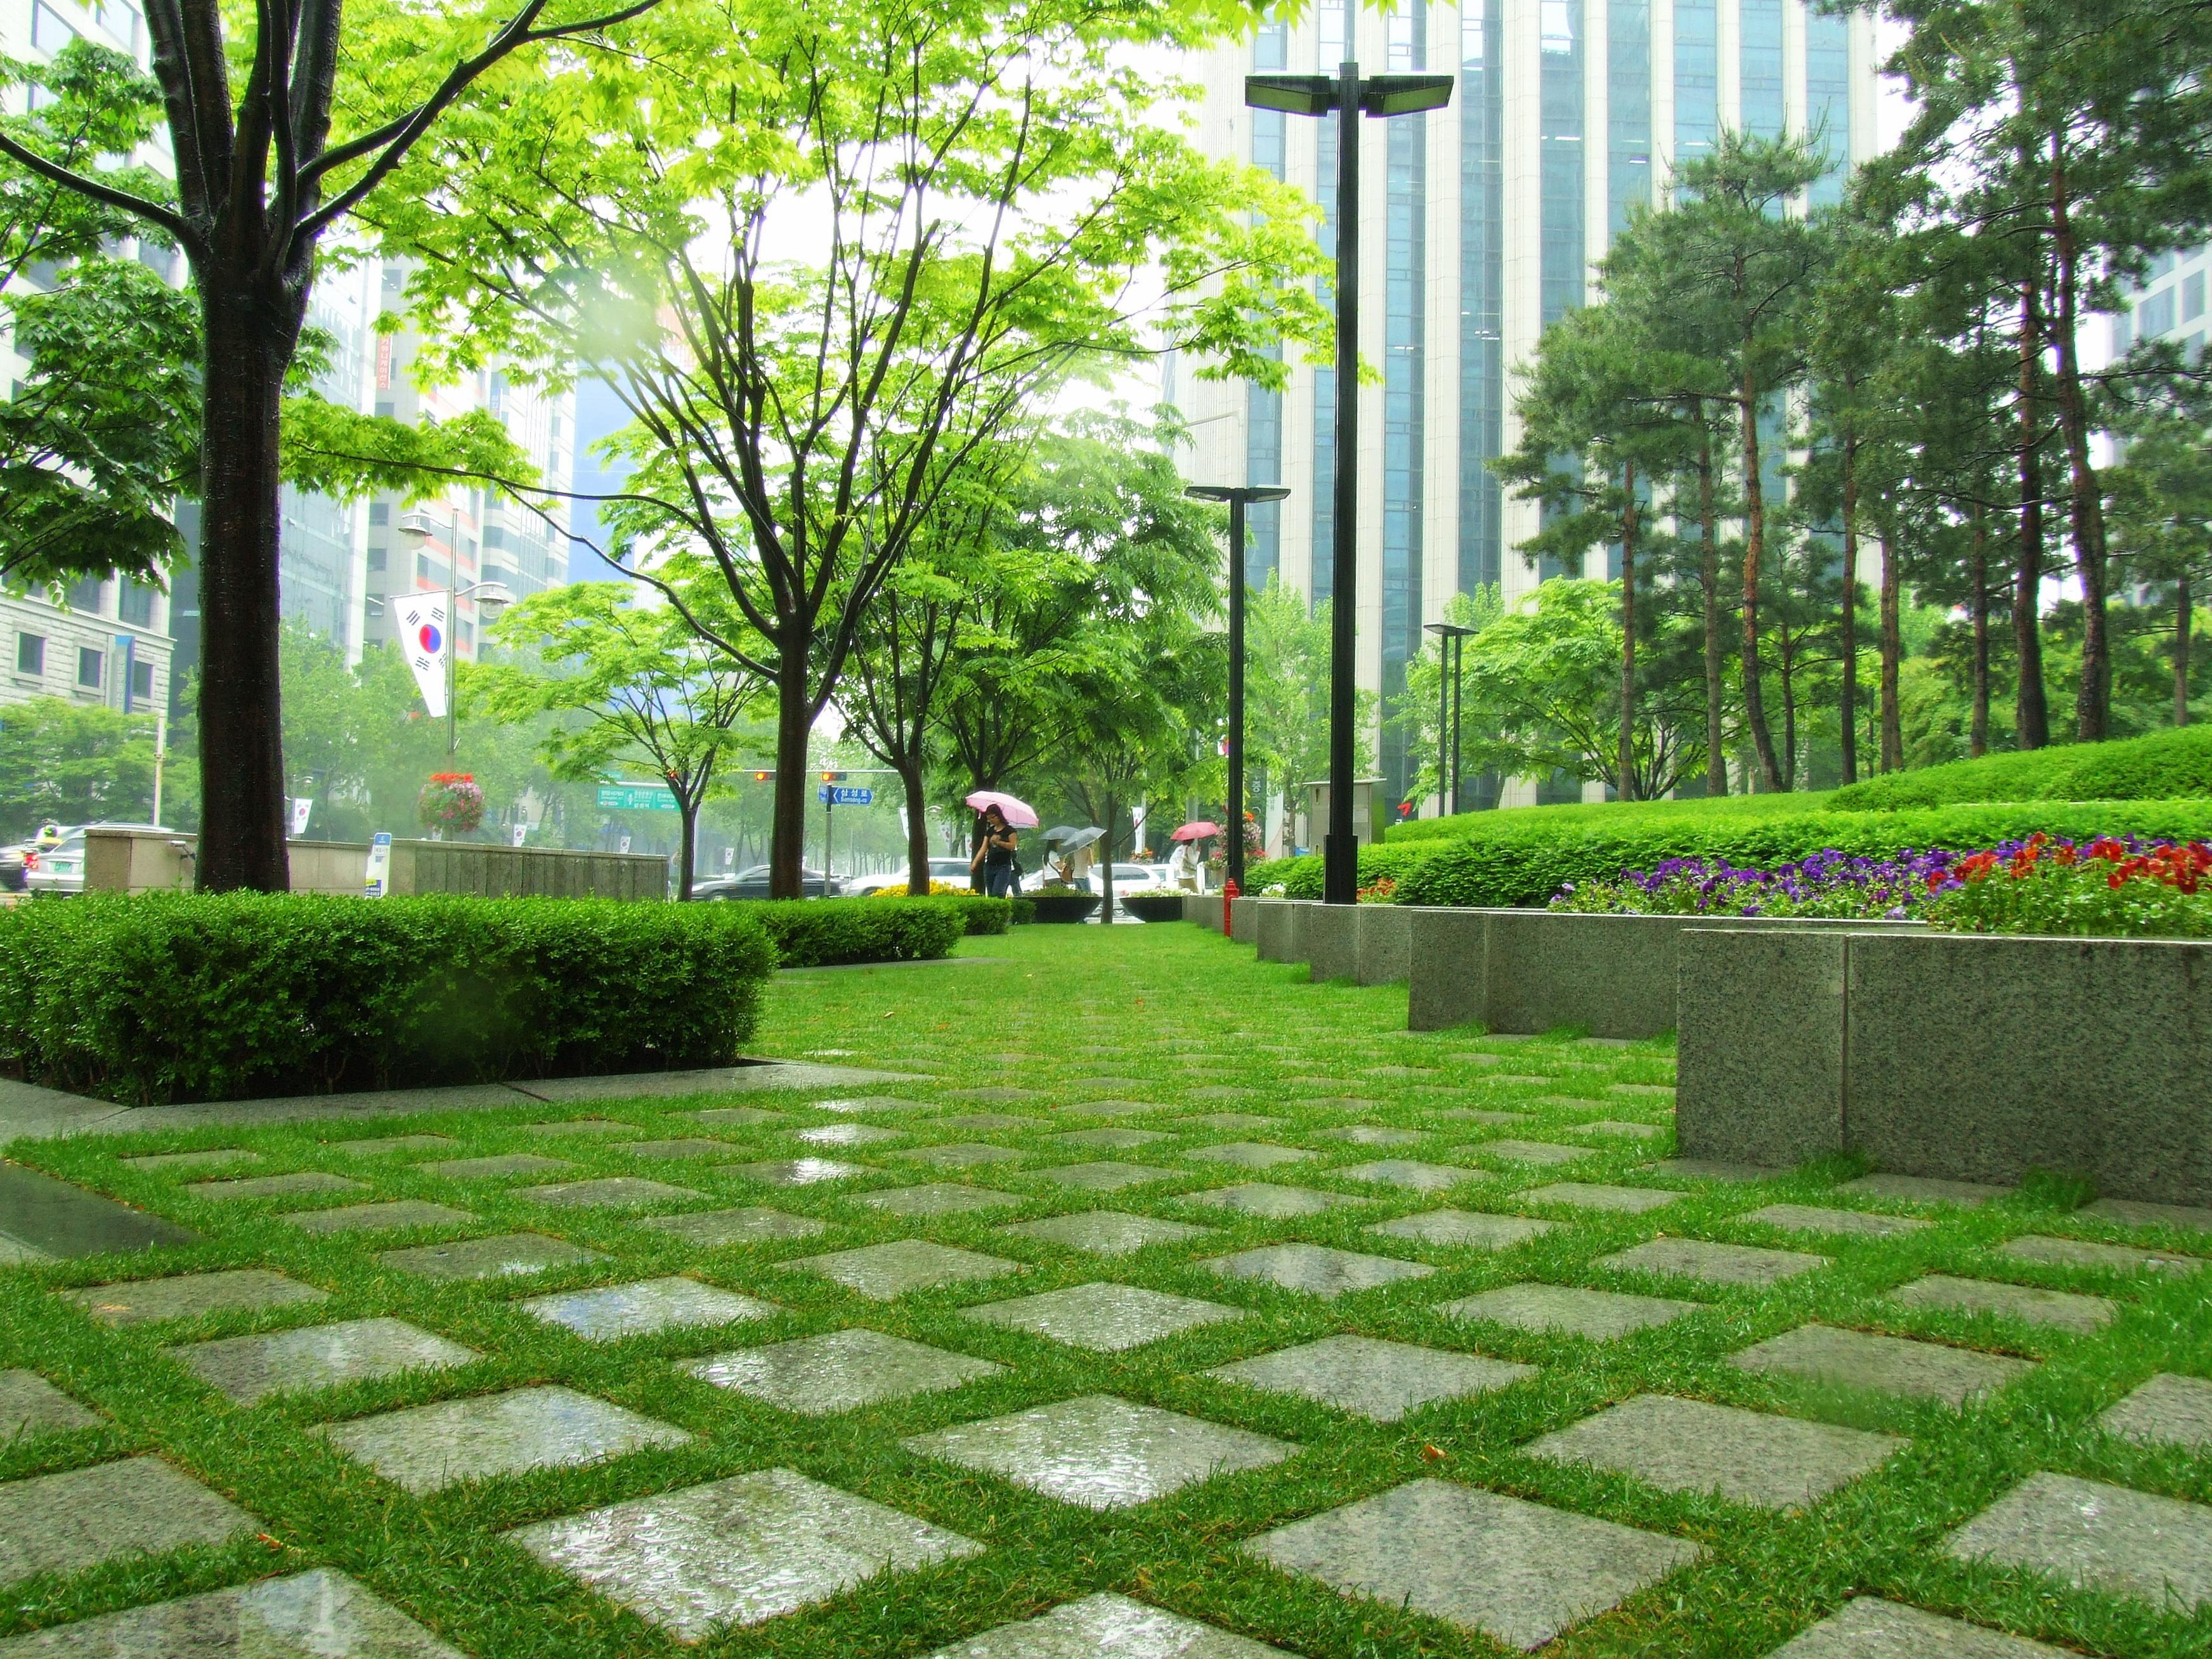 cityscapes grass Seoul Parks HD Wallpaper